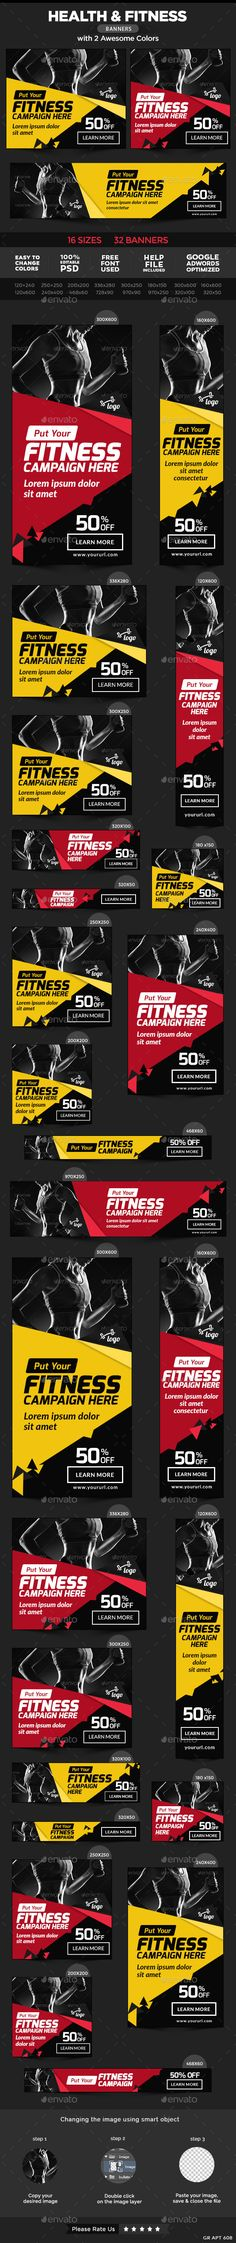 Buy Health and Fitness Banners by Hyov on GraphicRiver. Promote your Products and services related to Health and Fitness niche with this great looking Banner Set. Web Design, Flyer Design, Graphic Design, Banner Design, Academia Fitness, Bussiness Card, Workout Posters, Facebook Banner, Sports Graphics